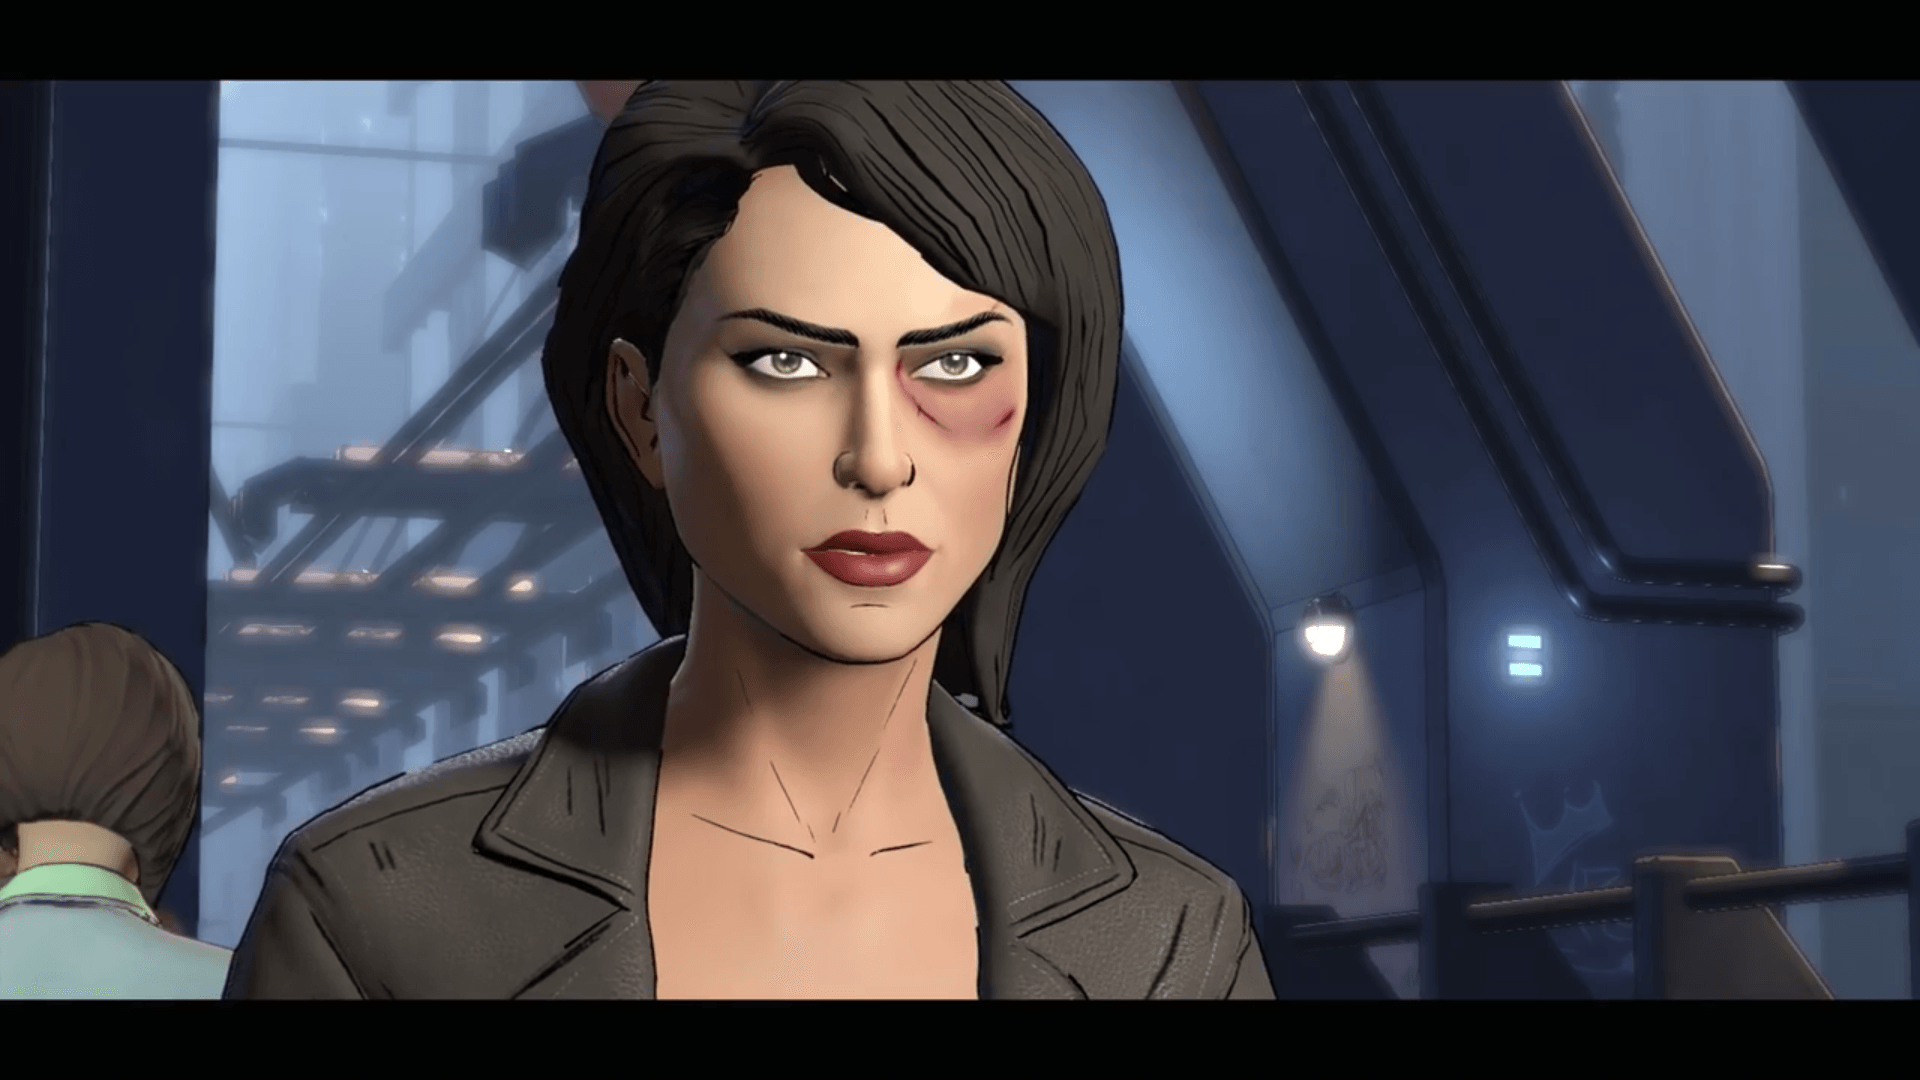 vicki vale telltale | Selina Kyle's encounter with Bruce Wayne gets interesting